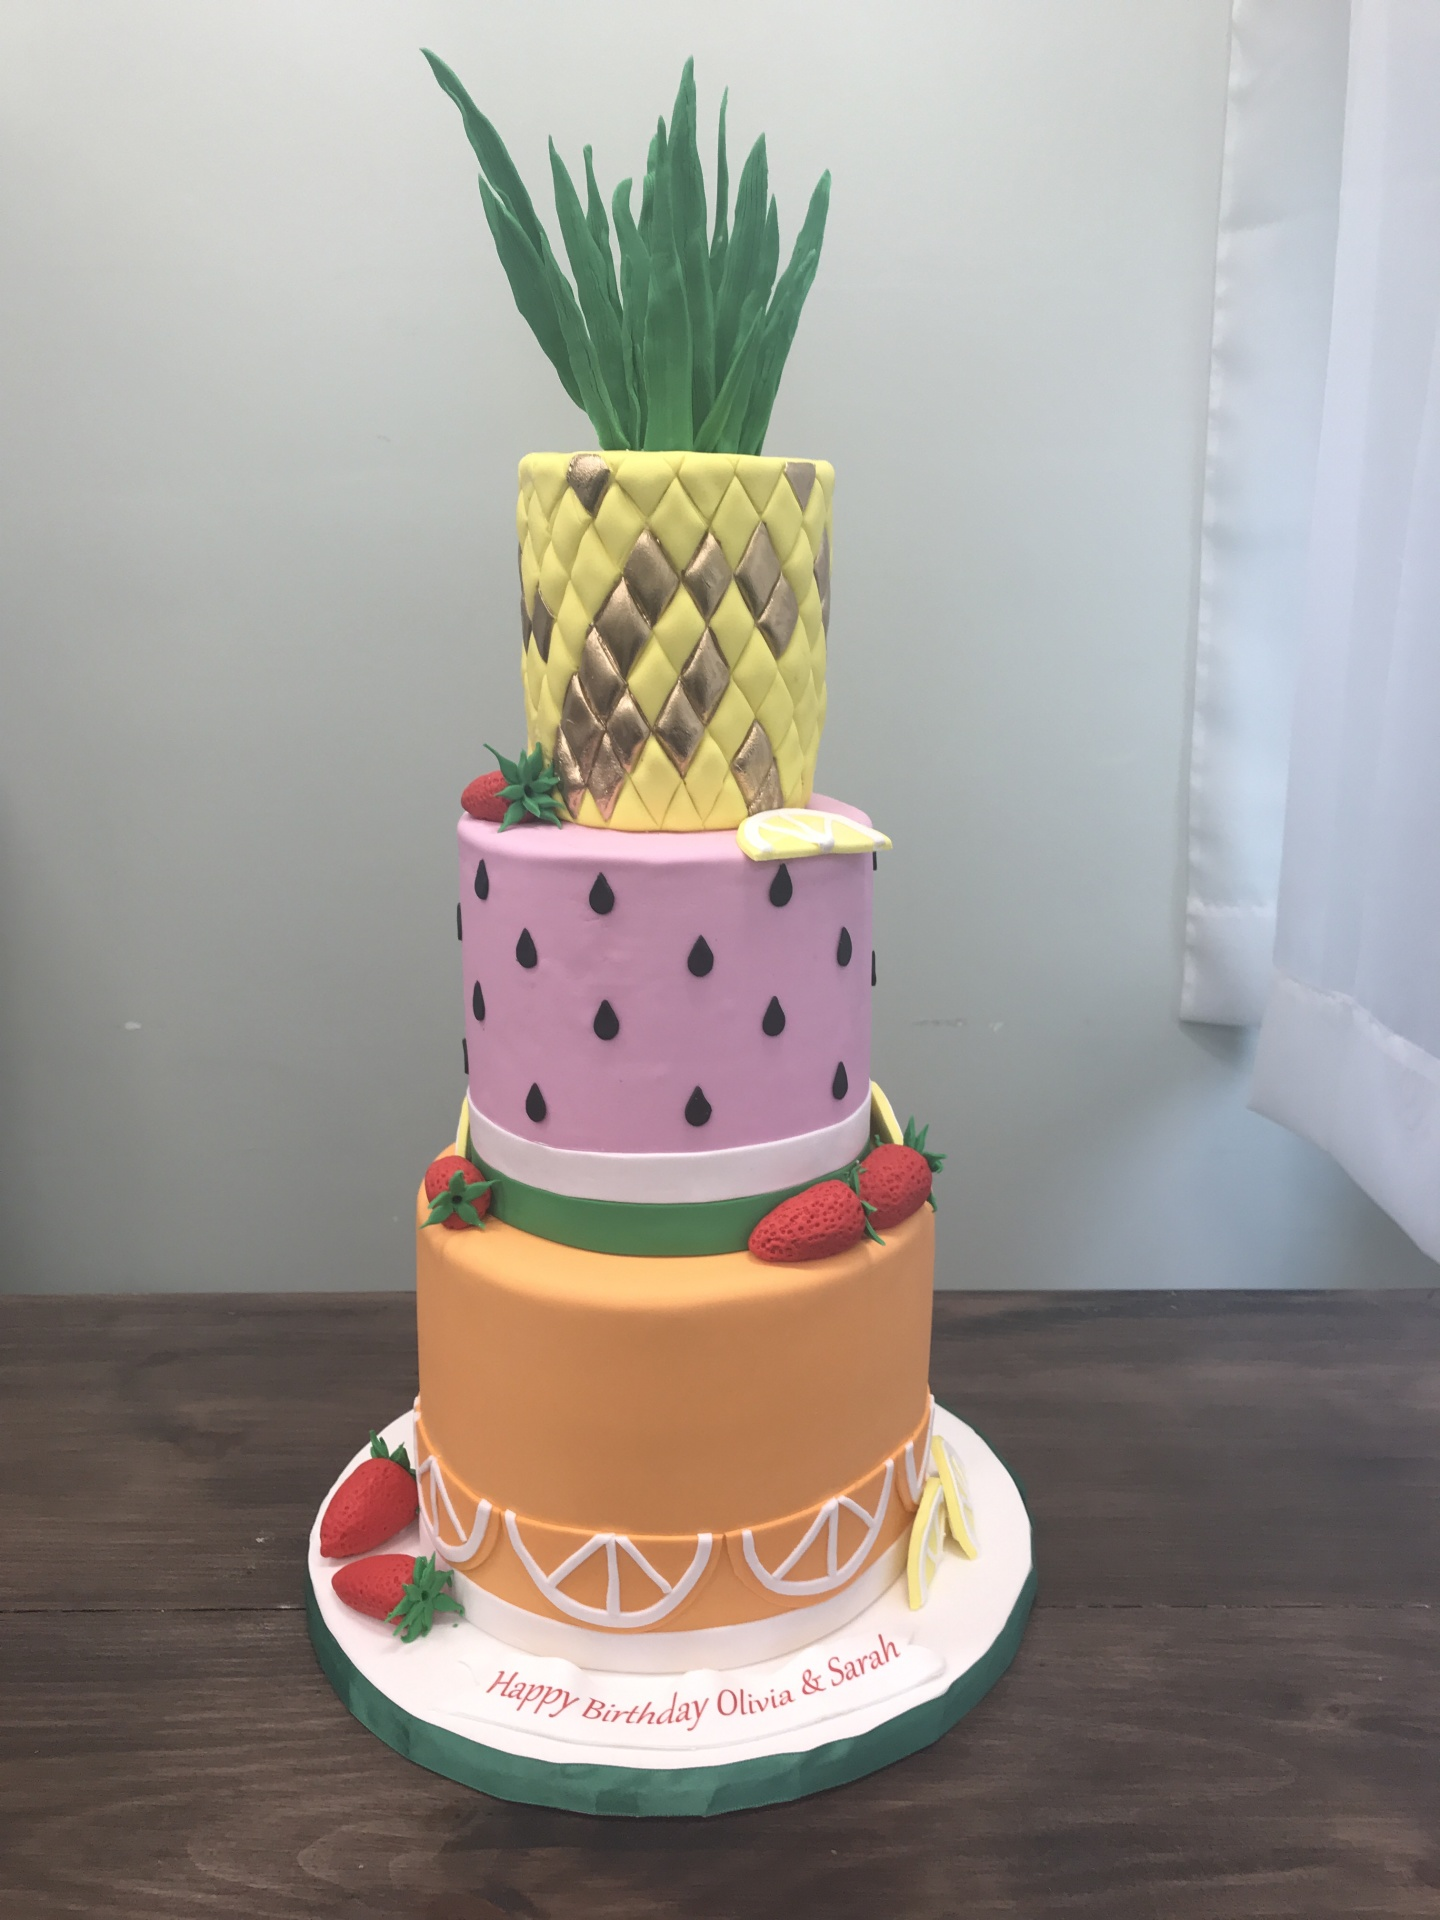 Summer Fruit Cake with Pineapple Custom Cakes NJ